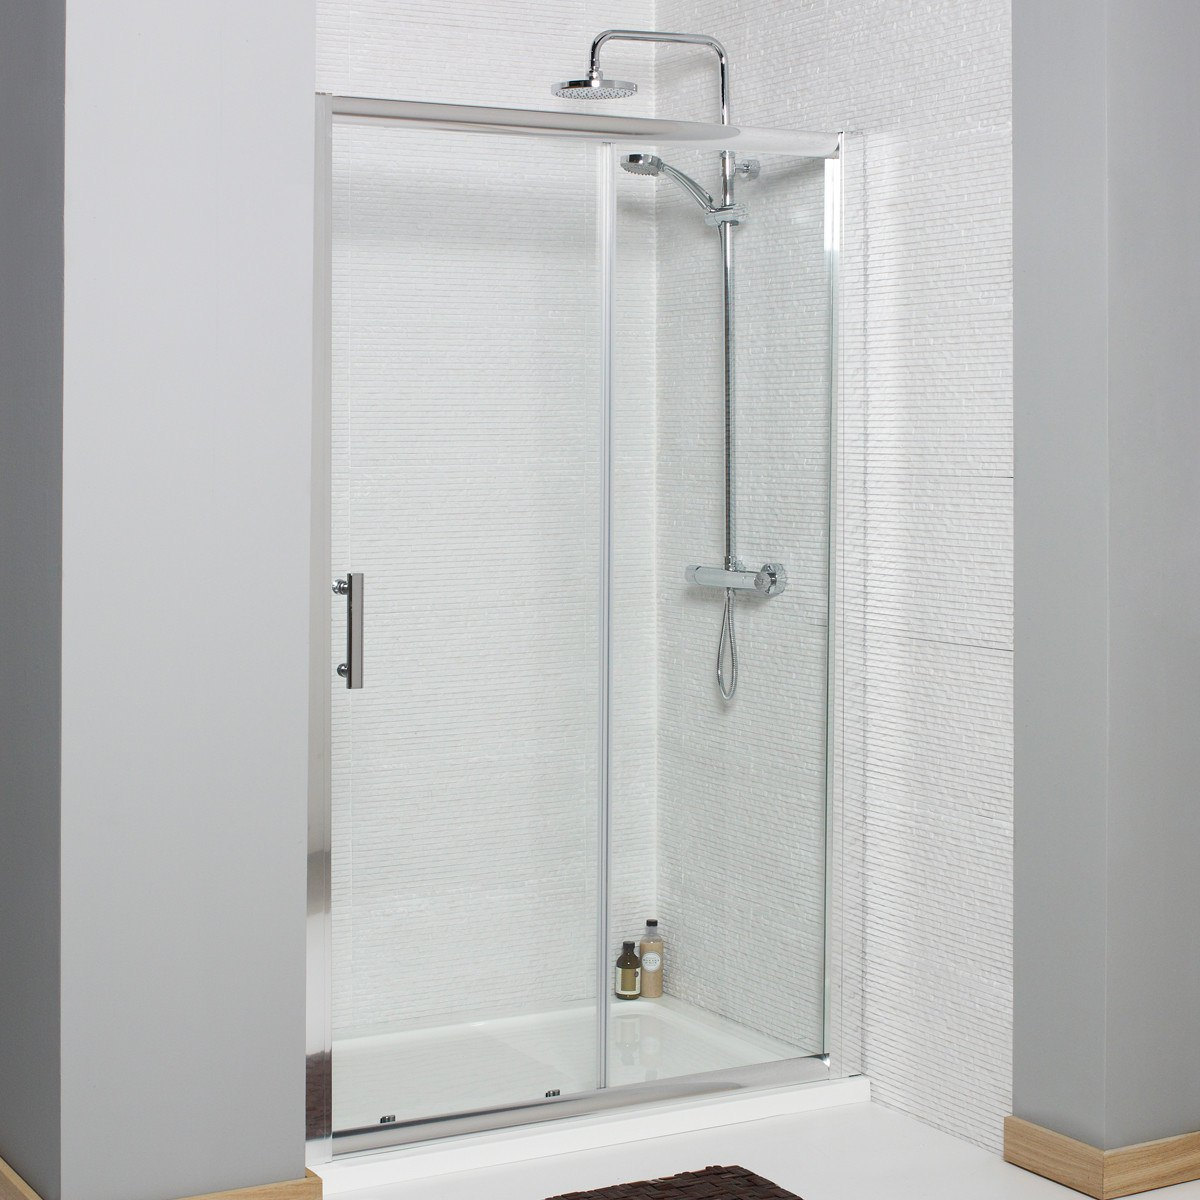 Kartell koncept 1200mm sliding shower door for 1200mm shower door sliding